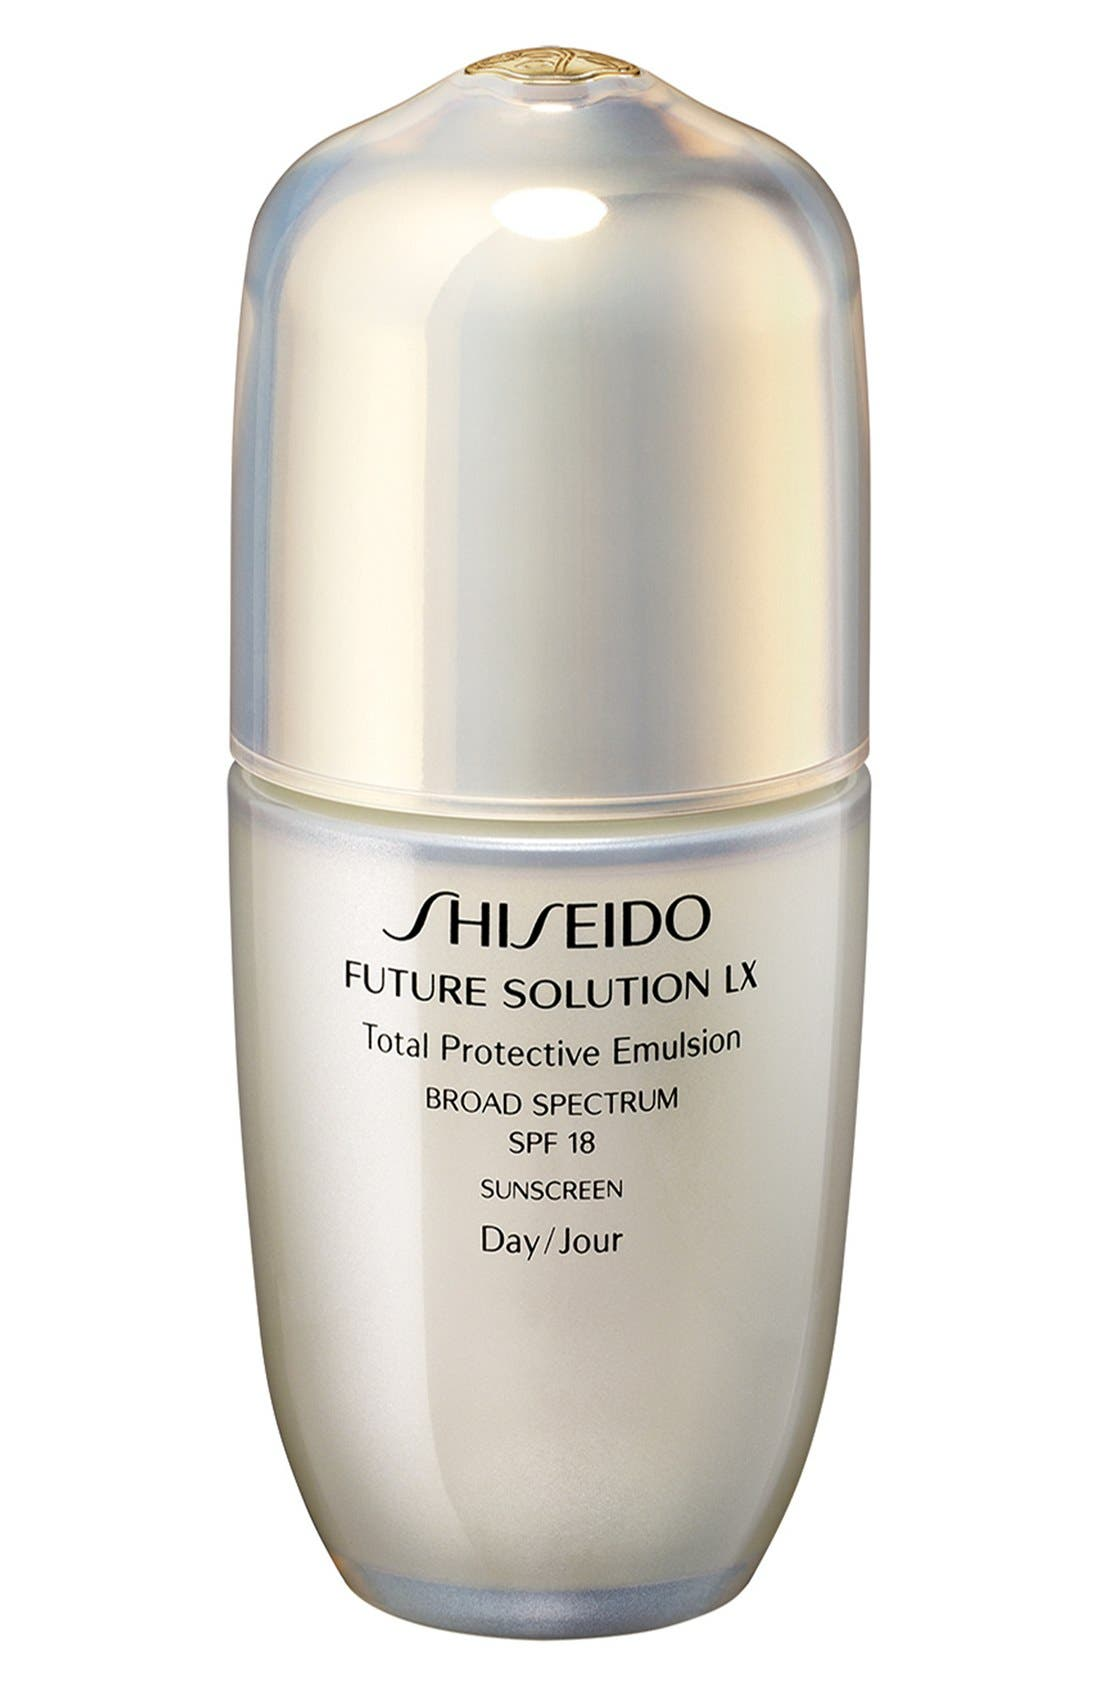 'Future Solution LX' Total Protective Emulsion SPF 18,                             Main thumbnail 1, color,                             000